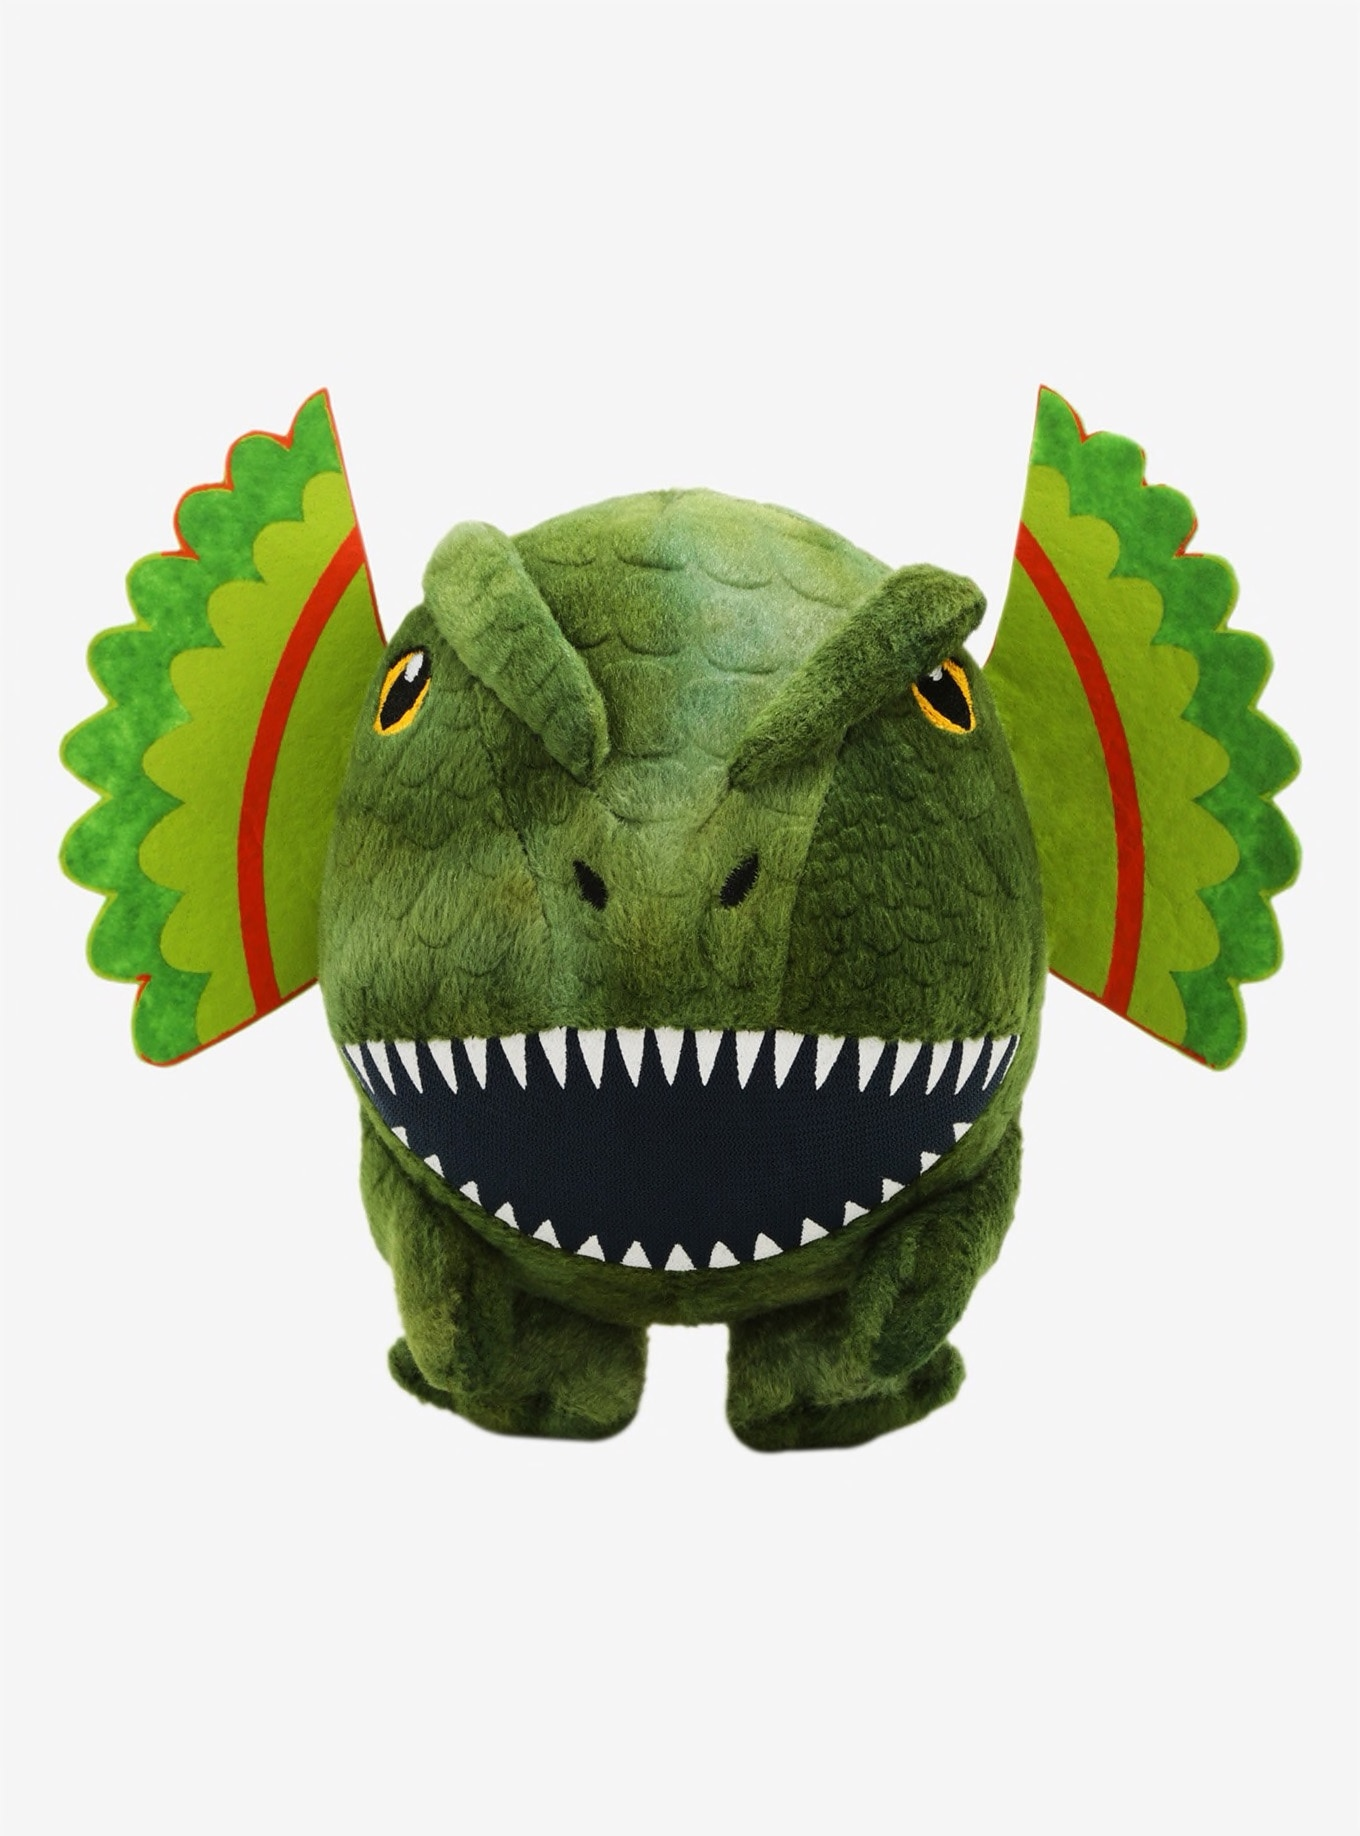 Jurassic World Dilophosaurus Dog Chew Toy - Exclusive: BoxLunch's JURASSIC WORLD Collection for Humans and Pets